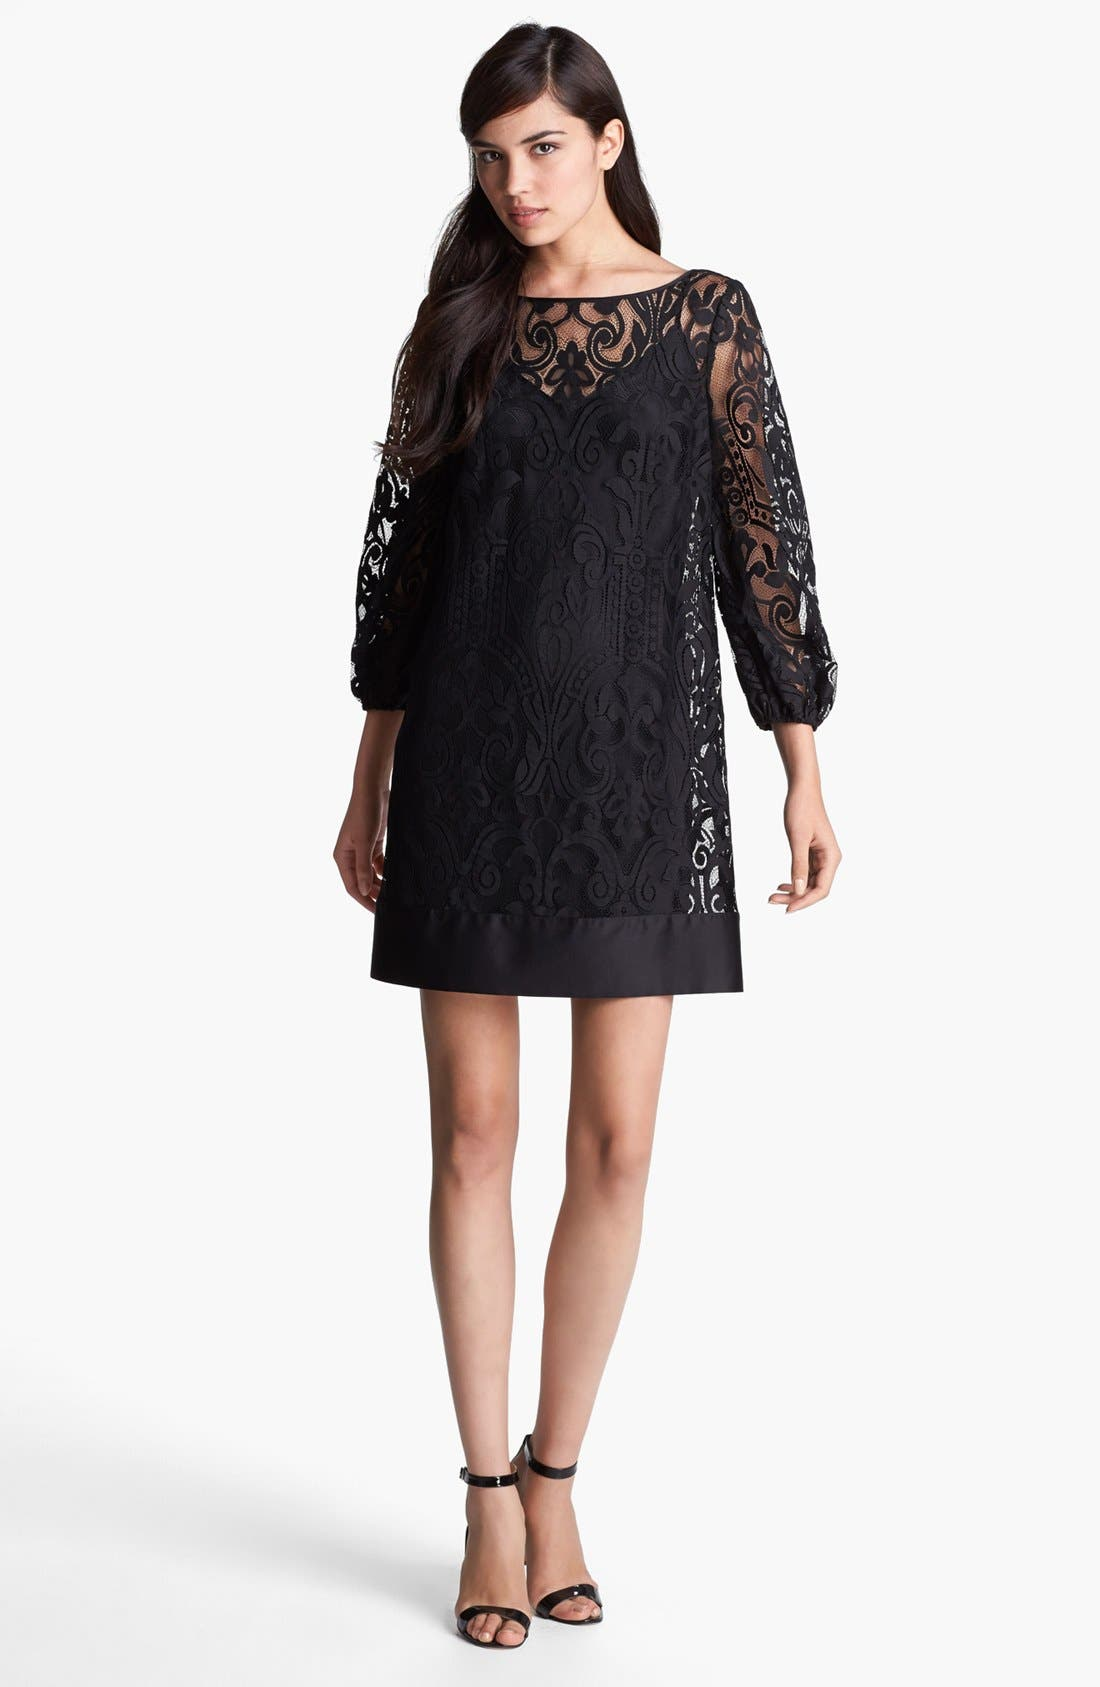 LAUNDRY BY SHELLI SEGAL Blouson Sleeve Lace Dress, Main, color, 001